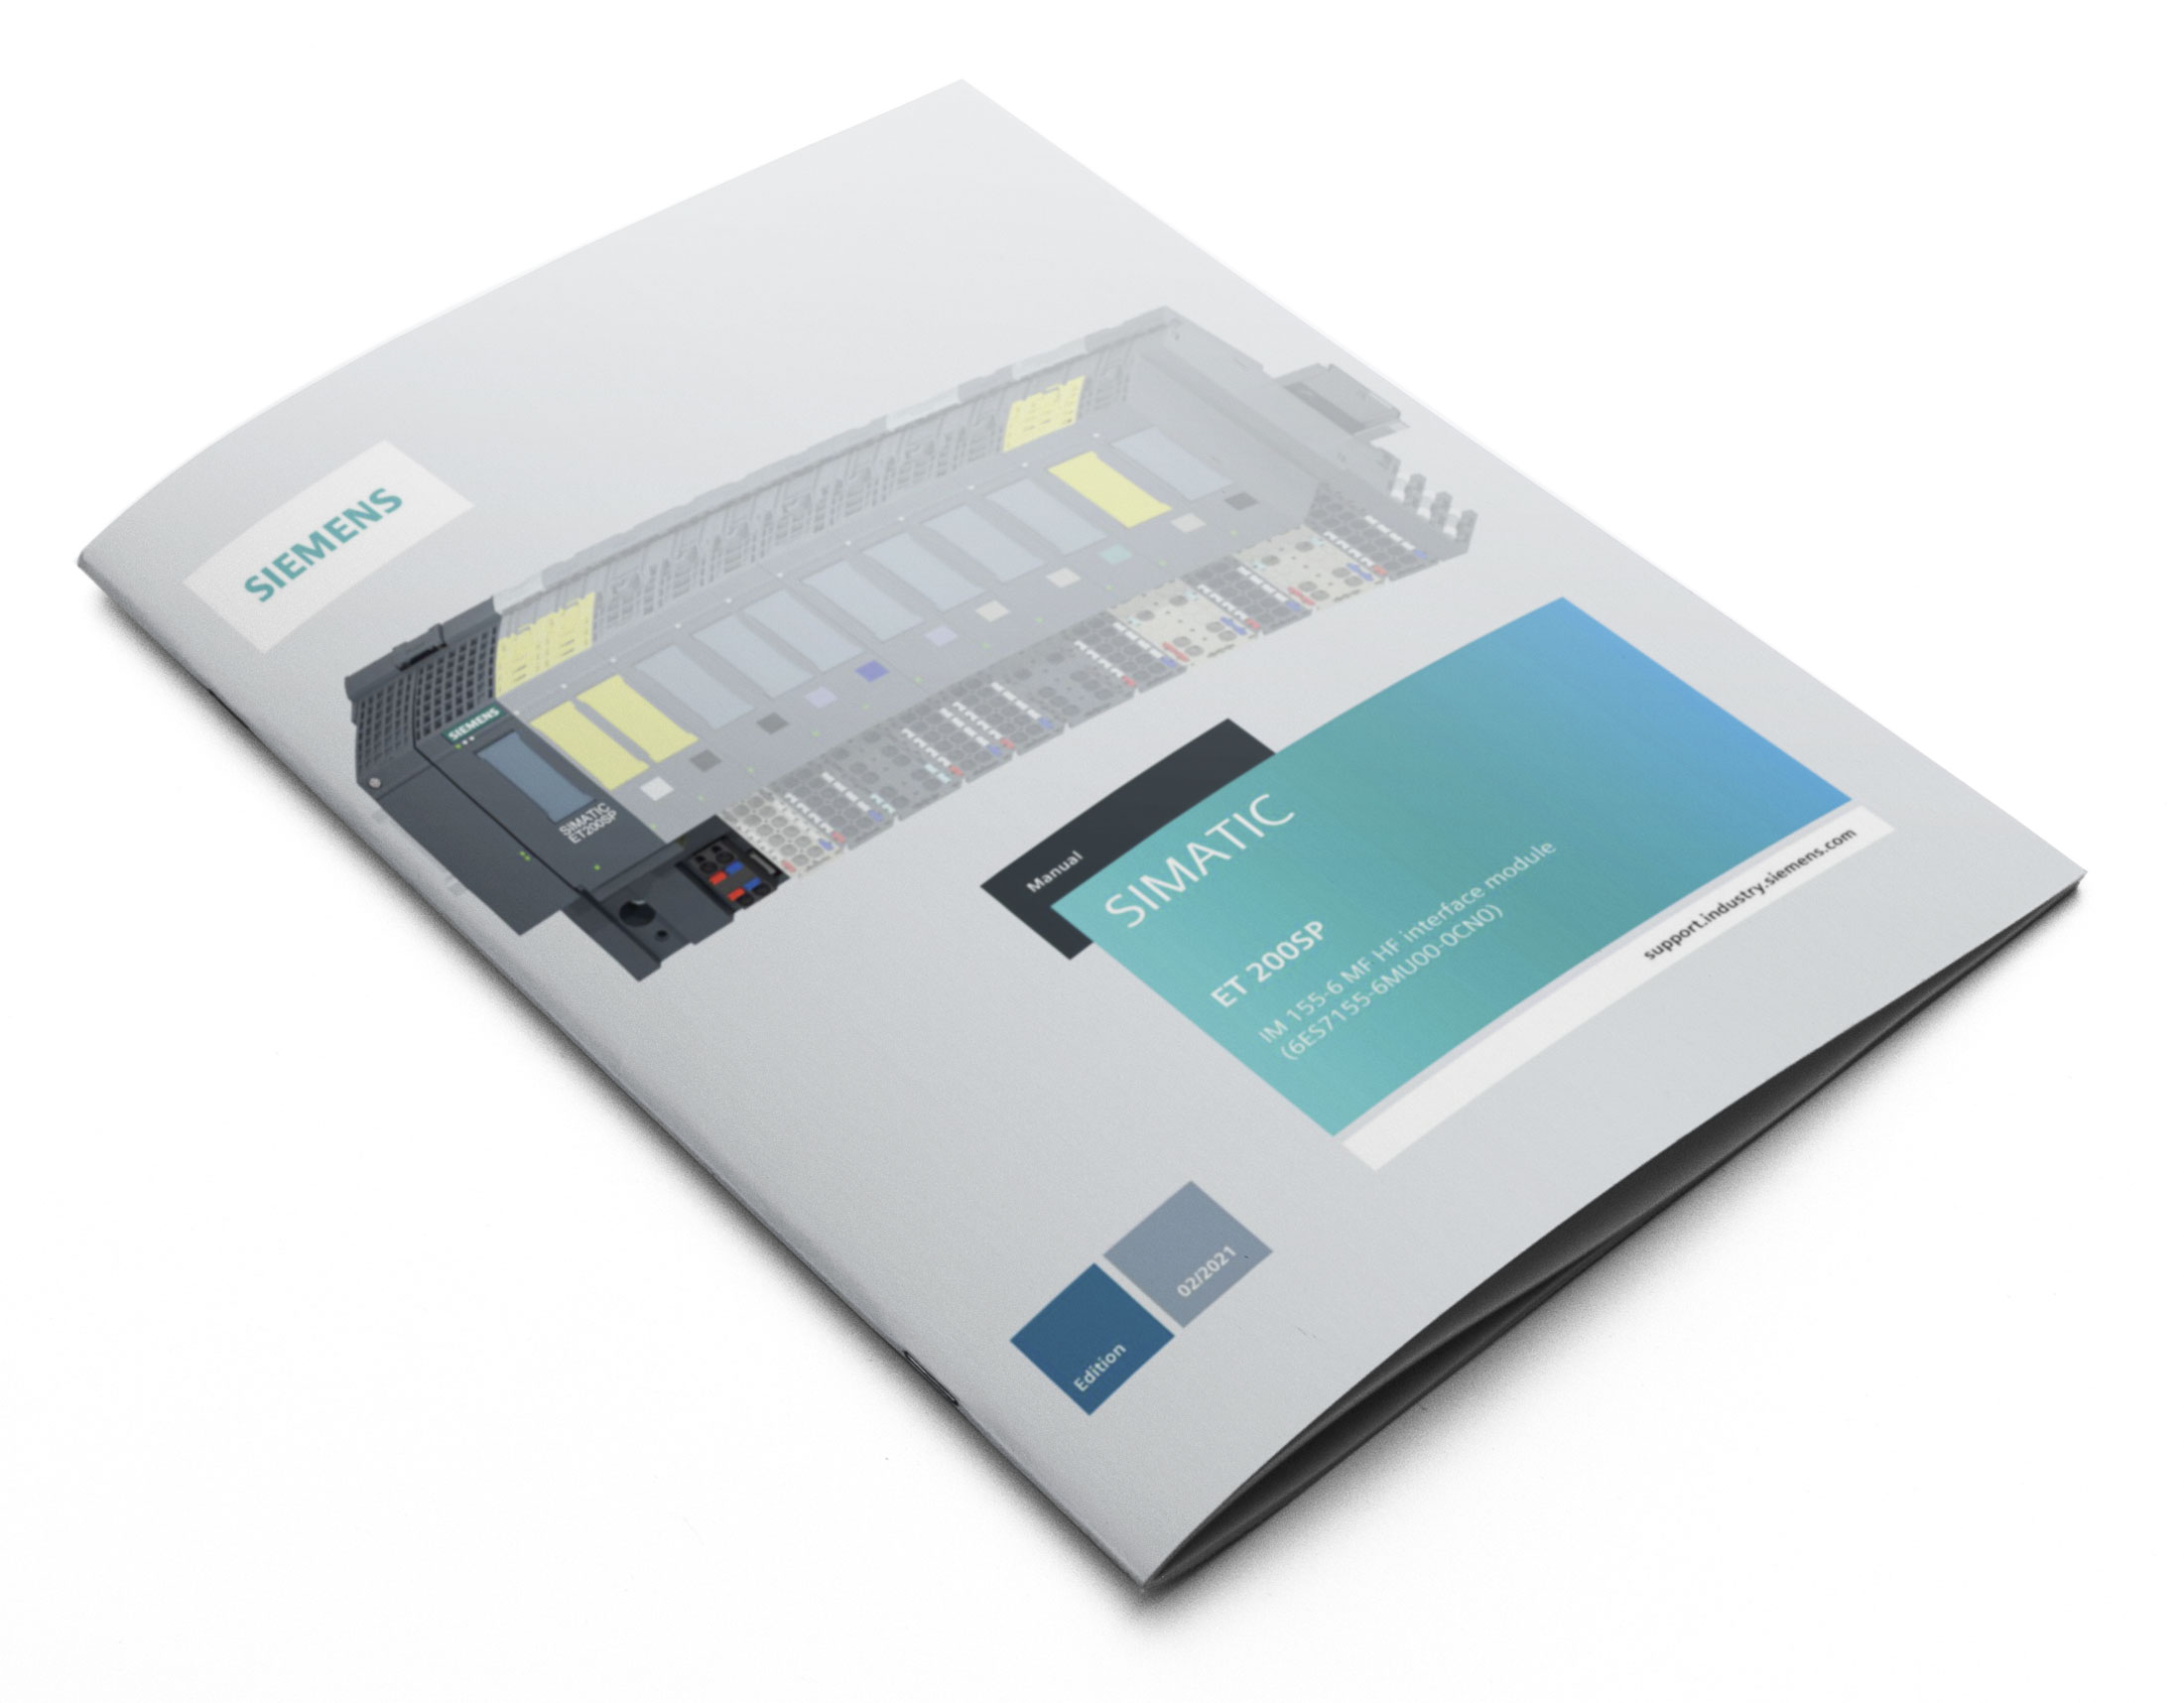 Siemens SIMATIC ET 200 Manual and Software